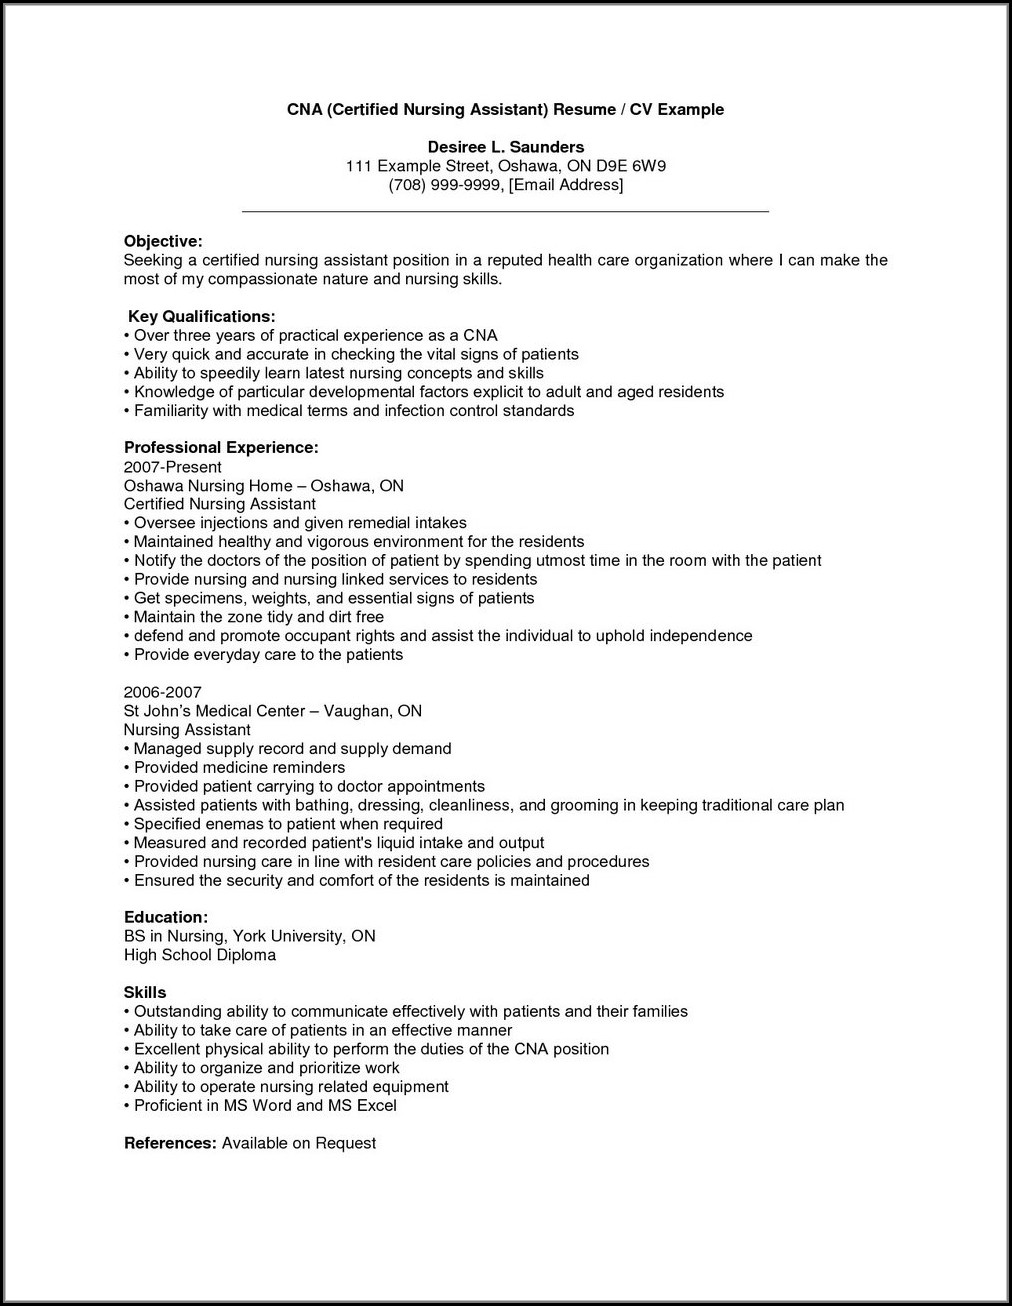 Sample Resume For Nursing Assistant With Experience